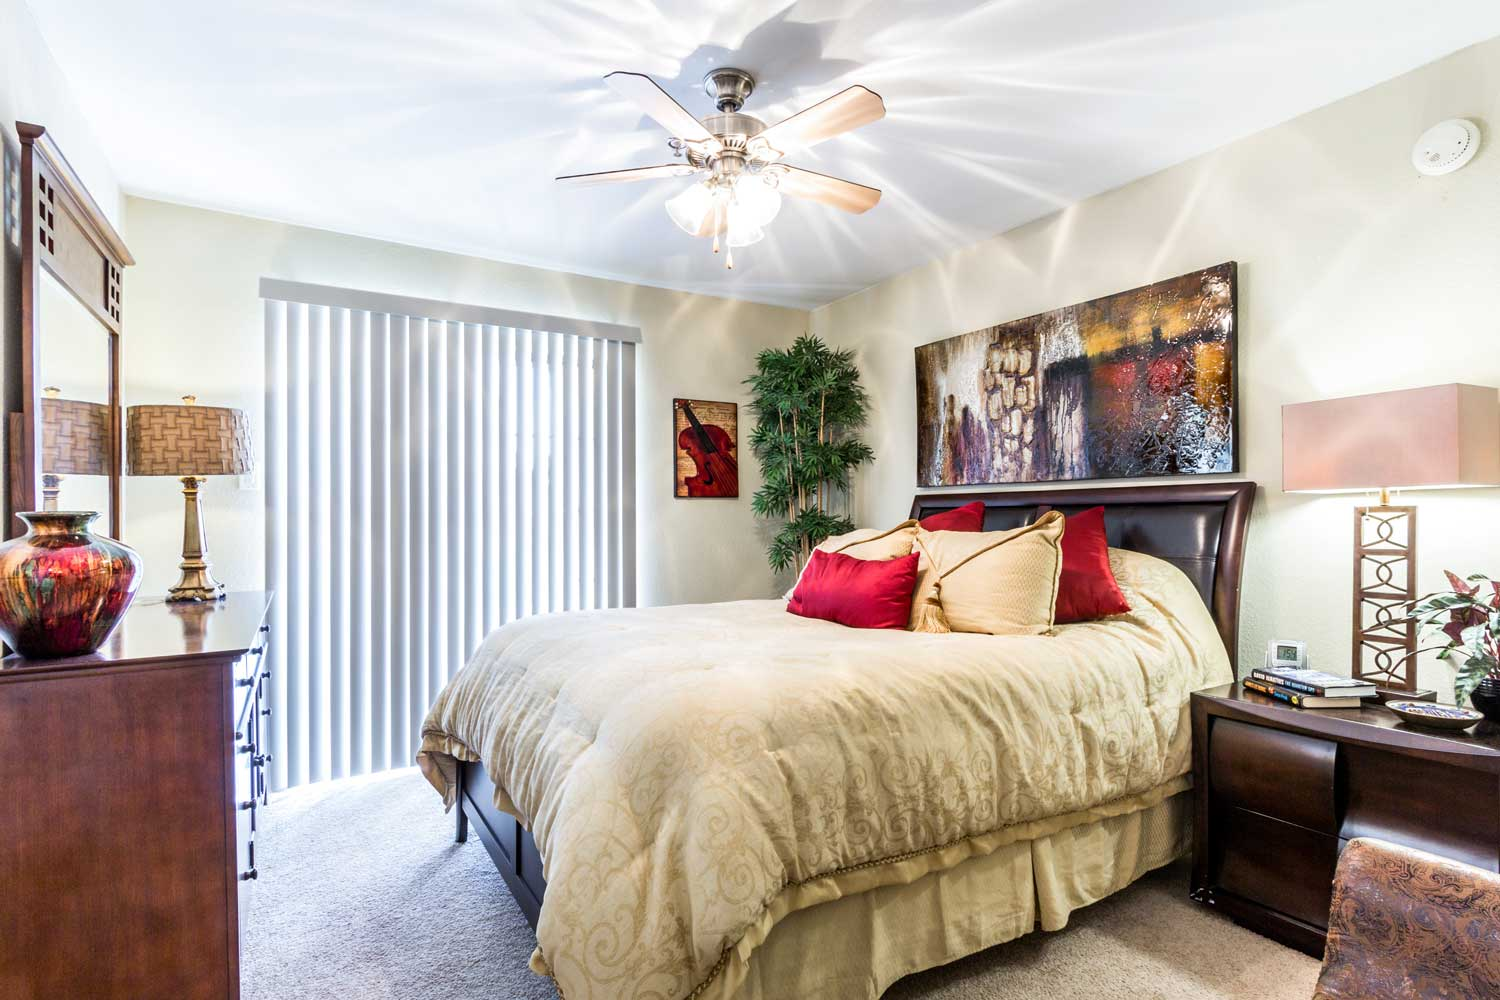 Bedrooms with Ceiling Fans at Forest Hills Apartments in Dallas, TX